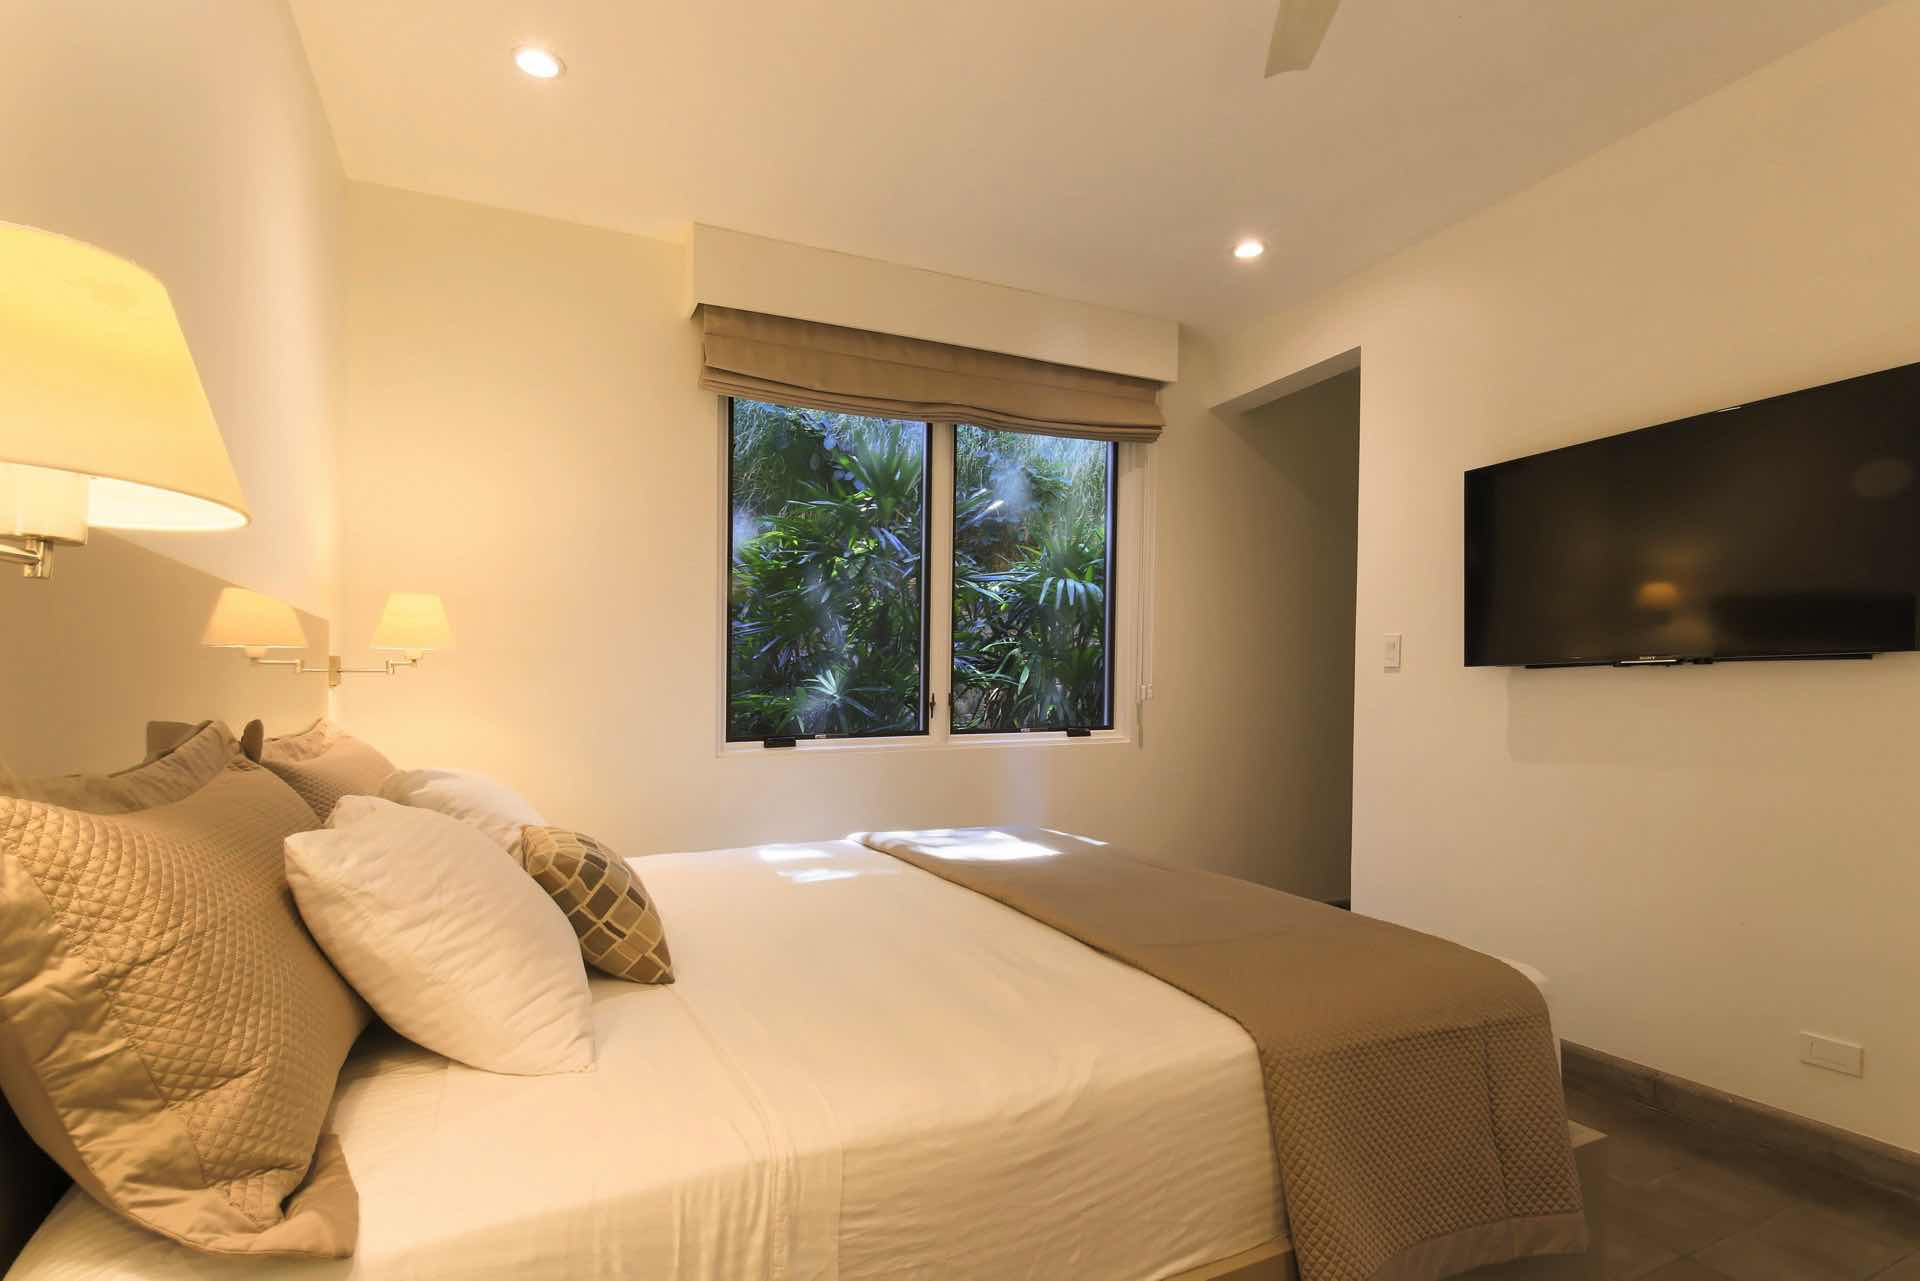 Each bedroom has a private bath and flat screen tv